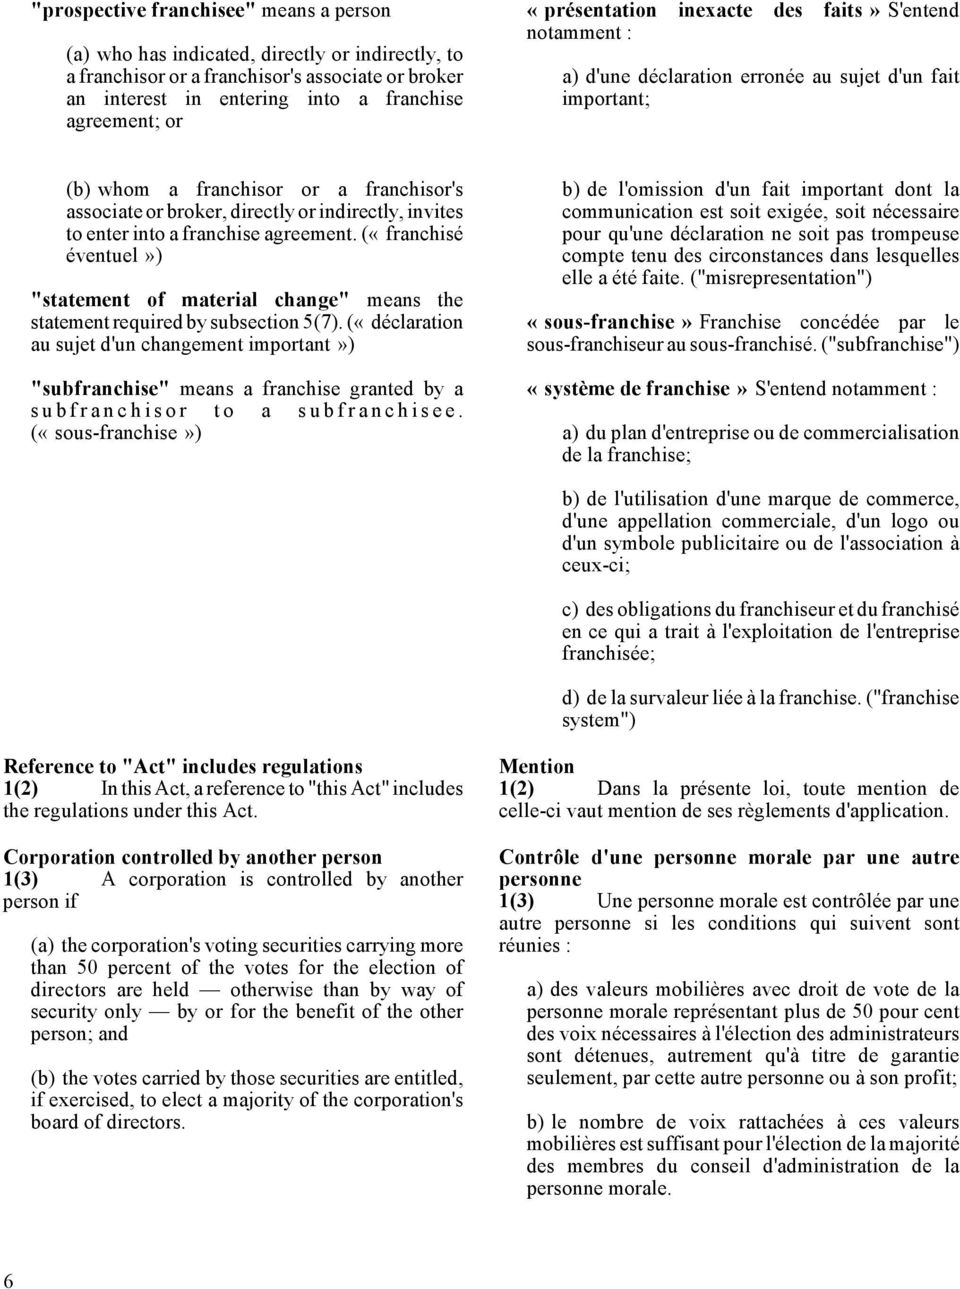 "invites to enter into a franchise agreement. («franchisé éventuel») ""statement of material change"" means the statement required by subsection 5(7)."